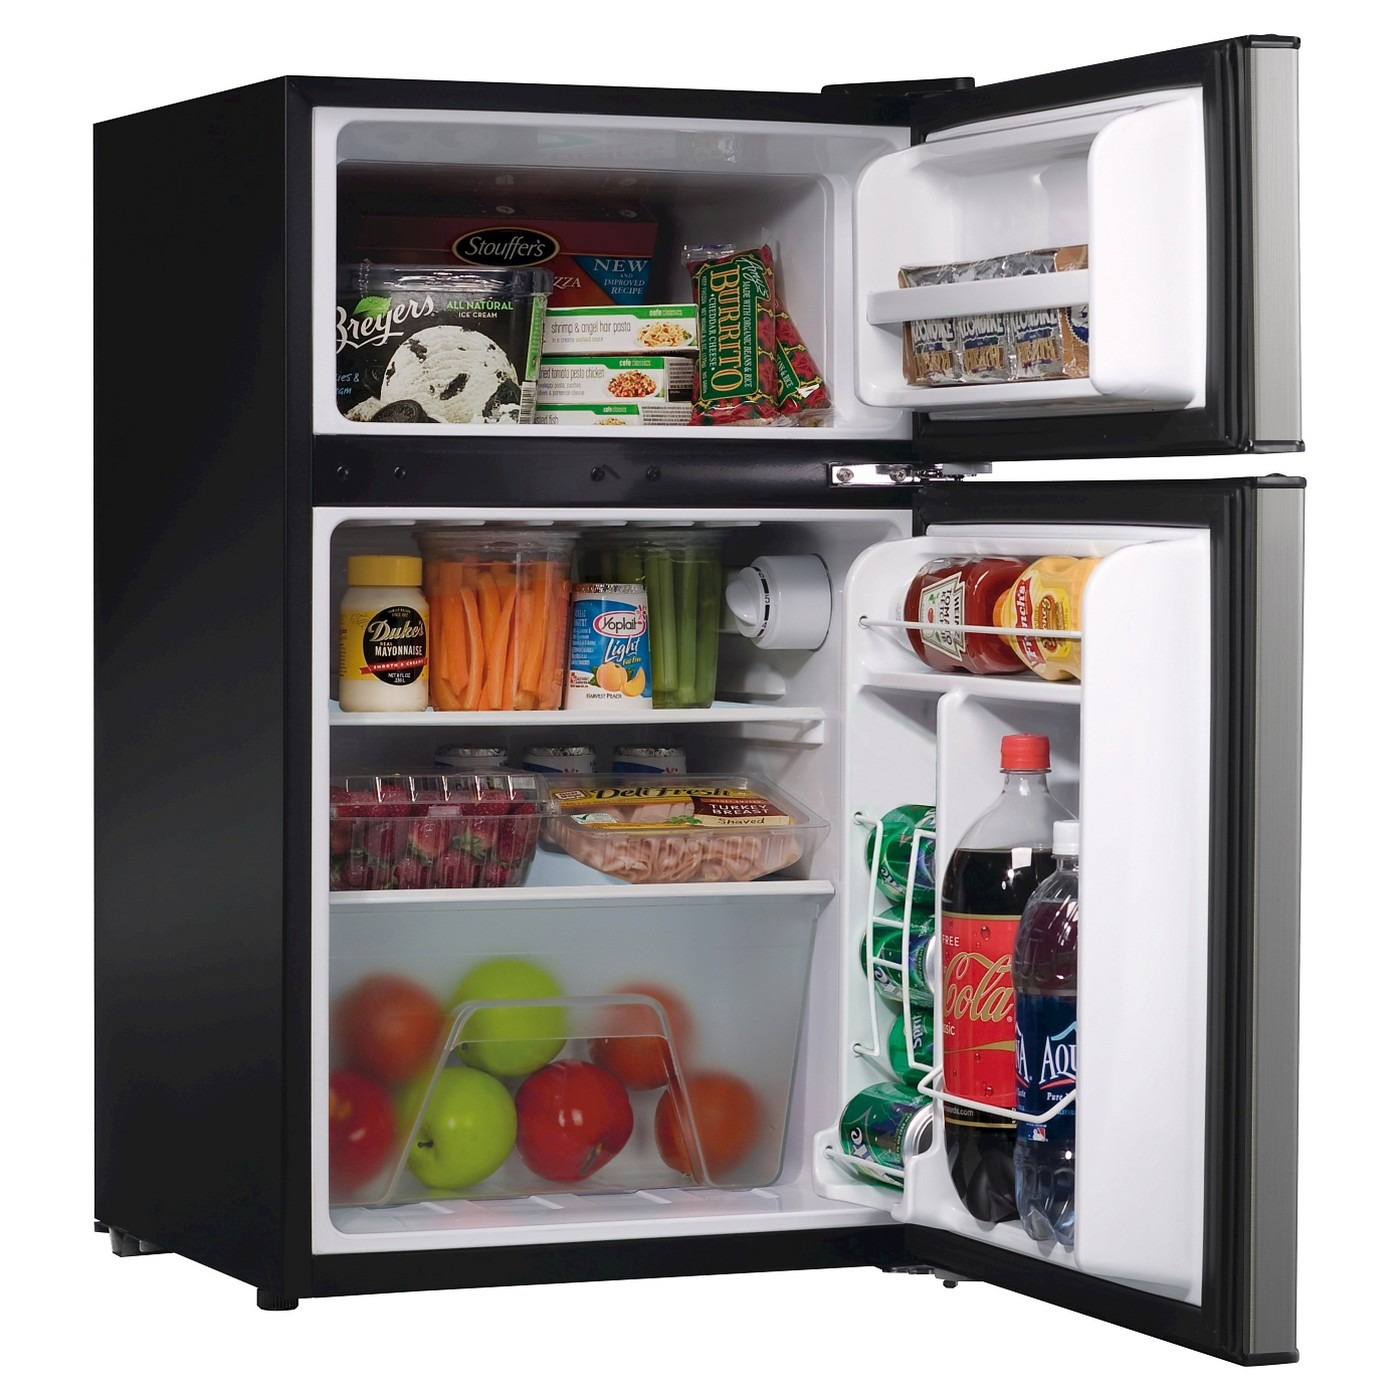 Whirlpool® 3.1 cu ft Mini Refrigerator Stainless